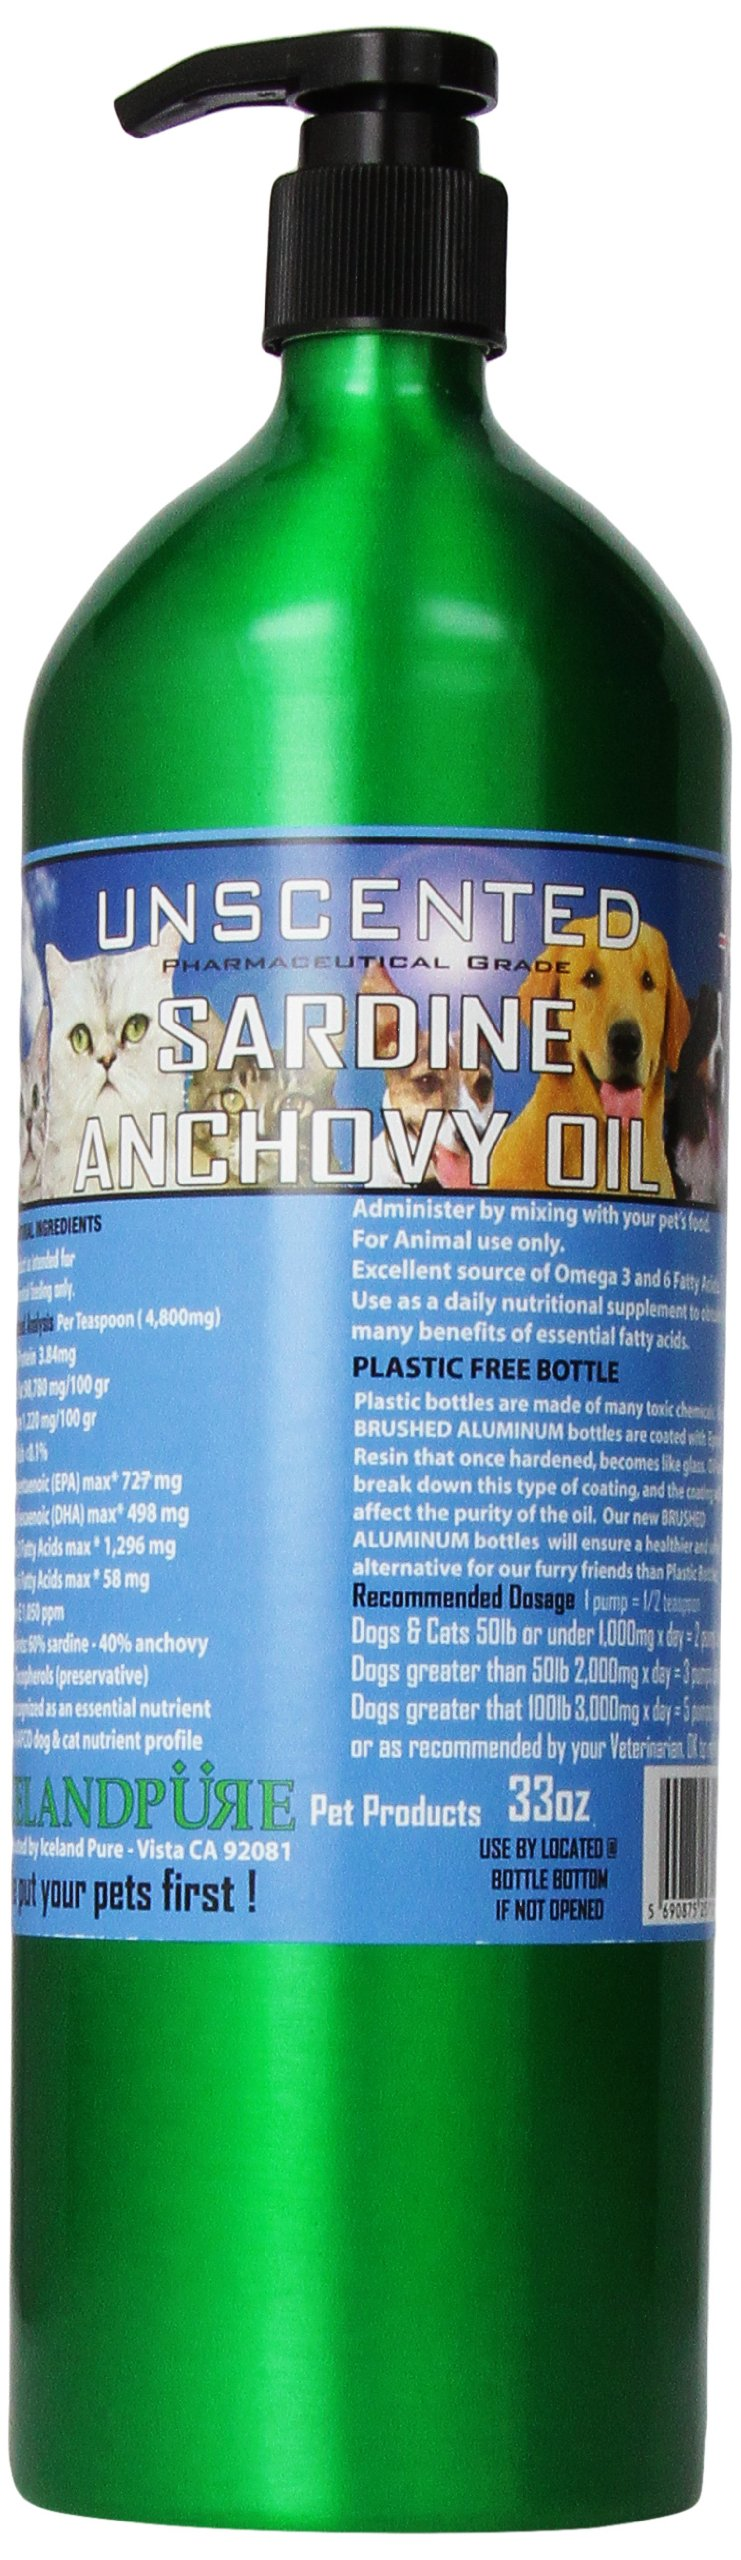 Iceland Pure Unscented Pharmaceutical Grade Sardine Anchovy Oil For Dogs and Cats.Bottle Size 33oz